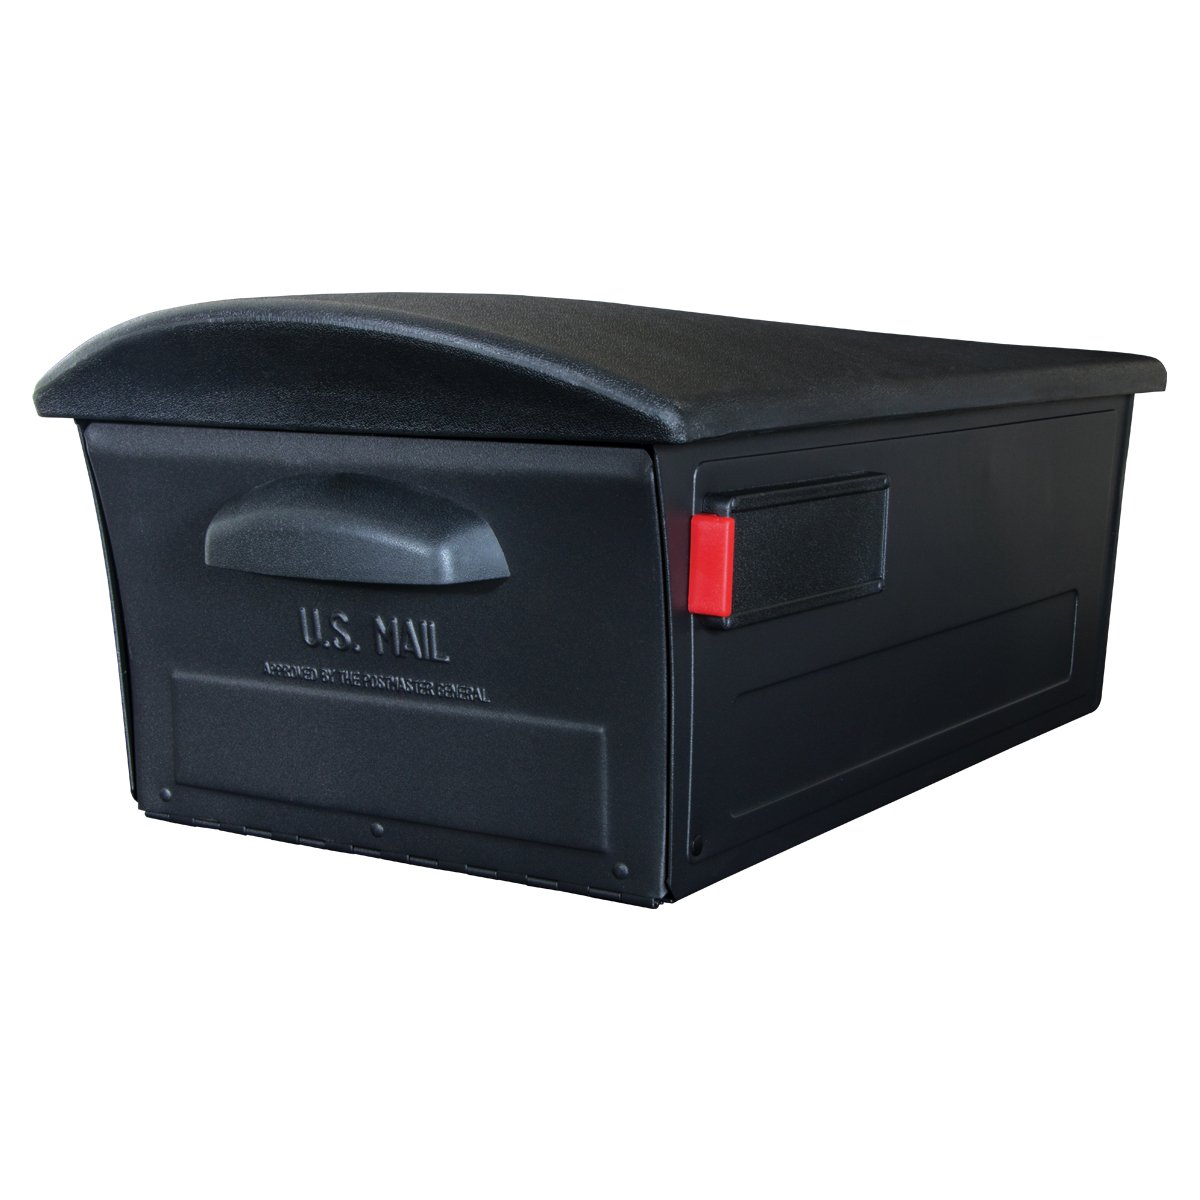 Gibraltar Mailboxes Mailsafe Large Capacity Rust-Proof Plastic Black, Post-Mount Mailbox, RSKB0000